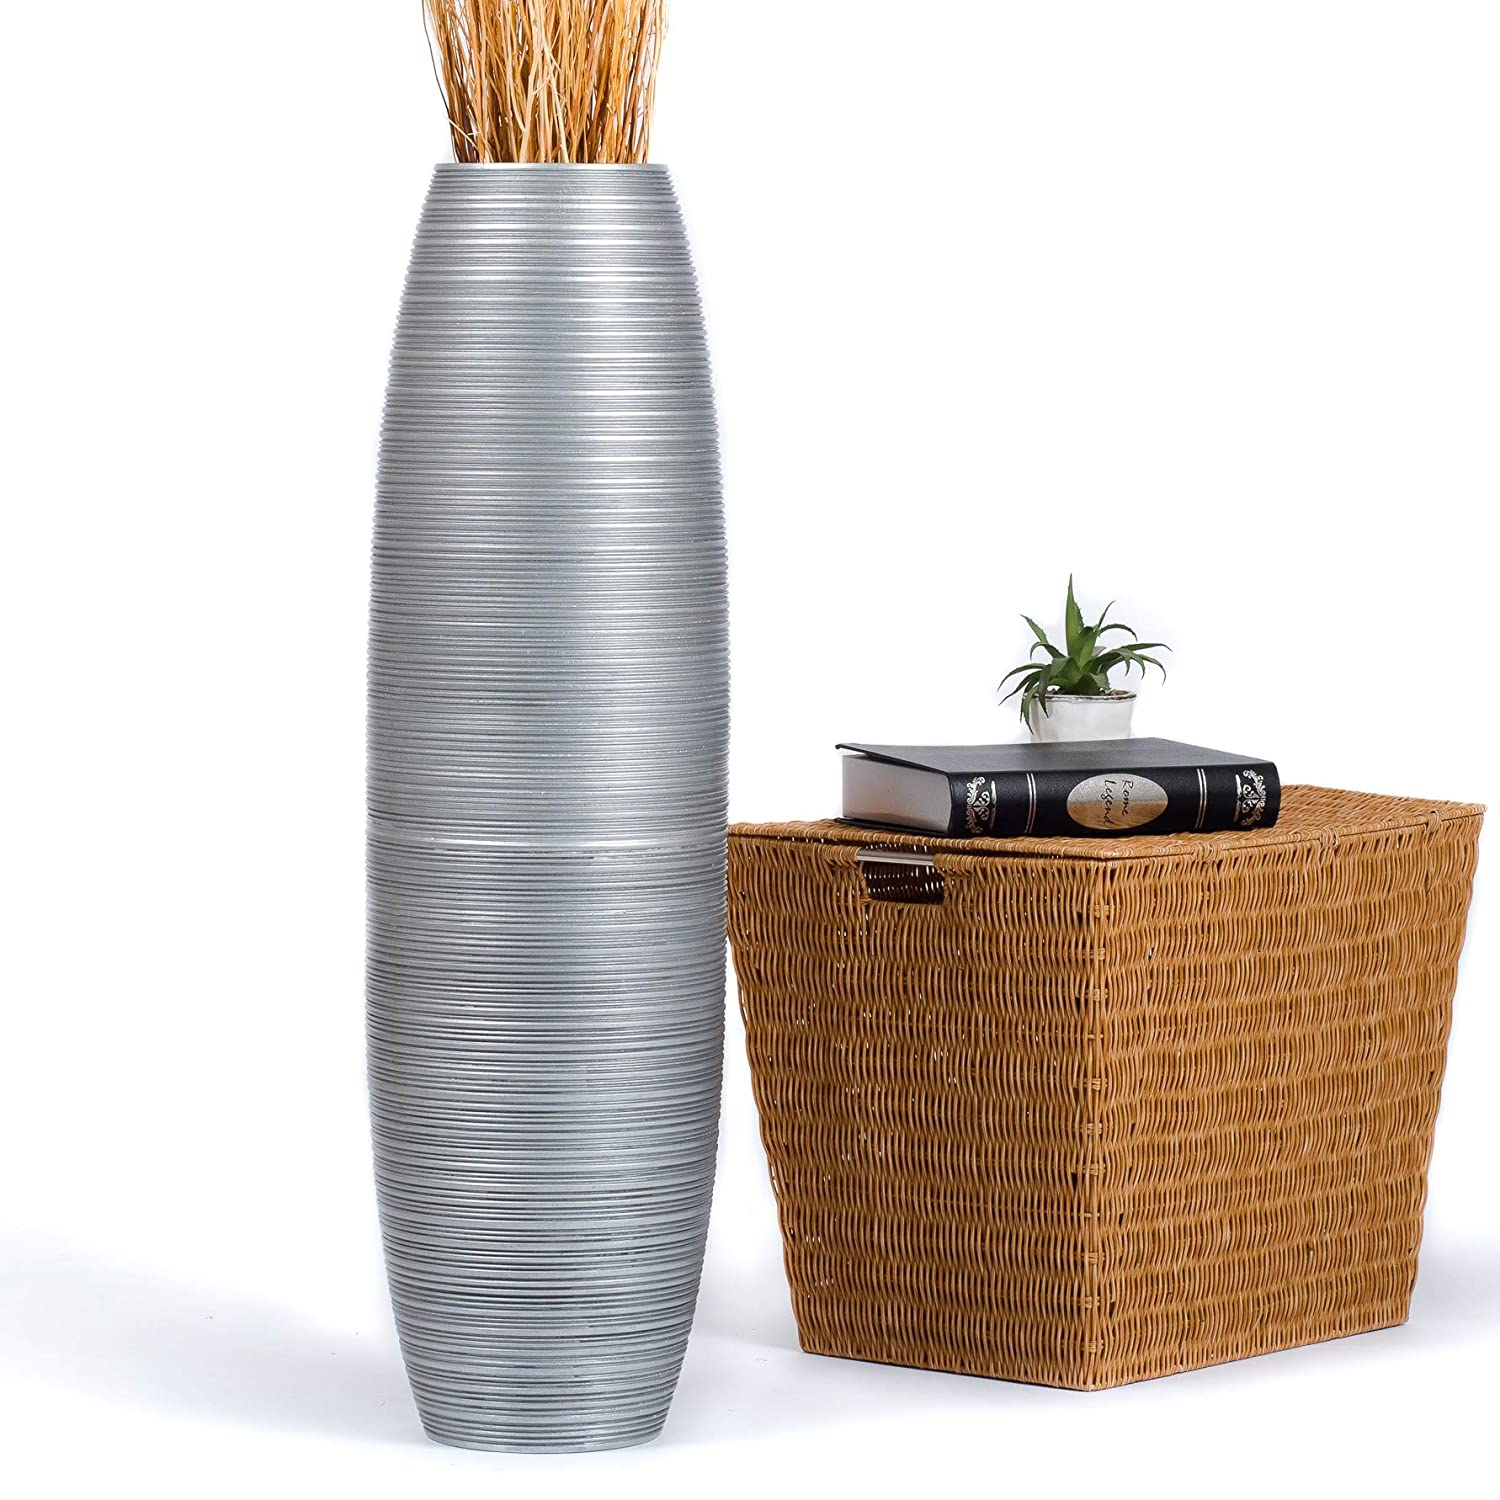 CDM product Leewadee Tall Big Floor Standing Vase For Home Decor, 10x36 inches, Wood, silver-coloured big image